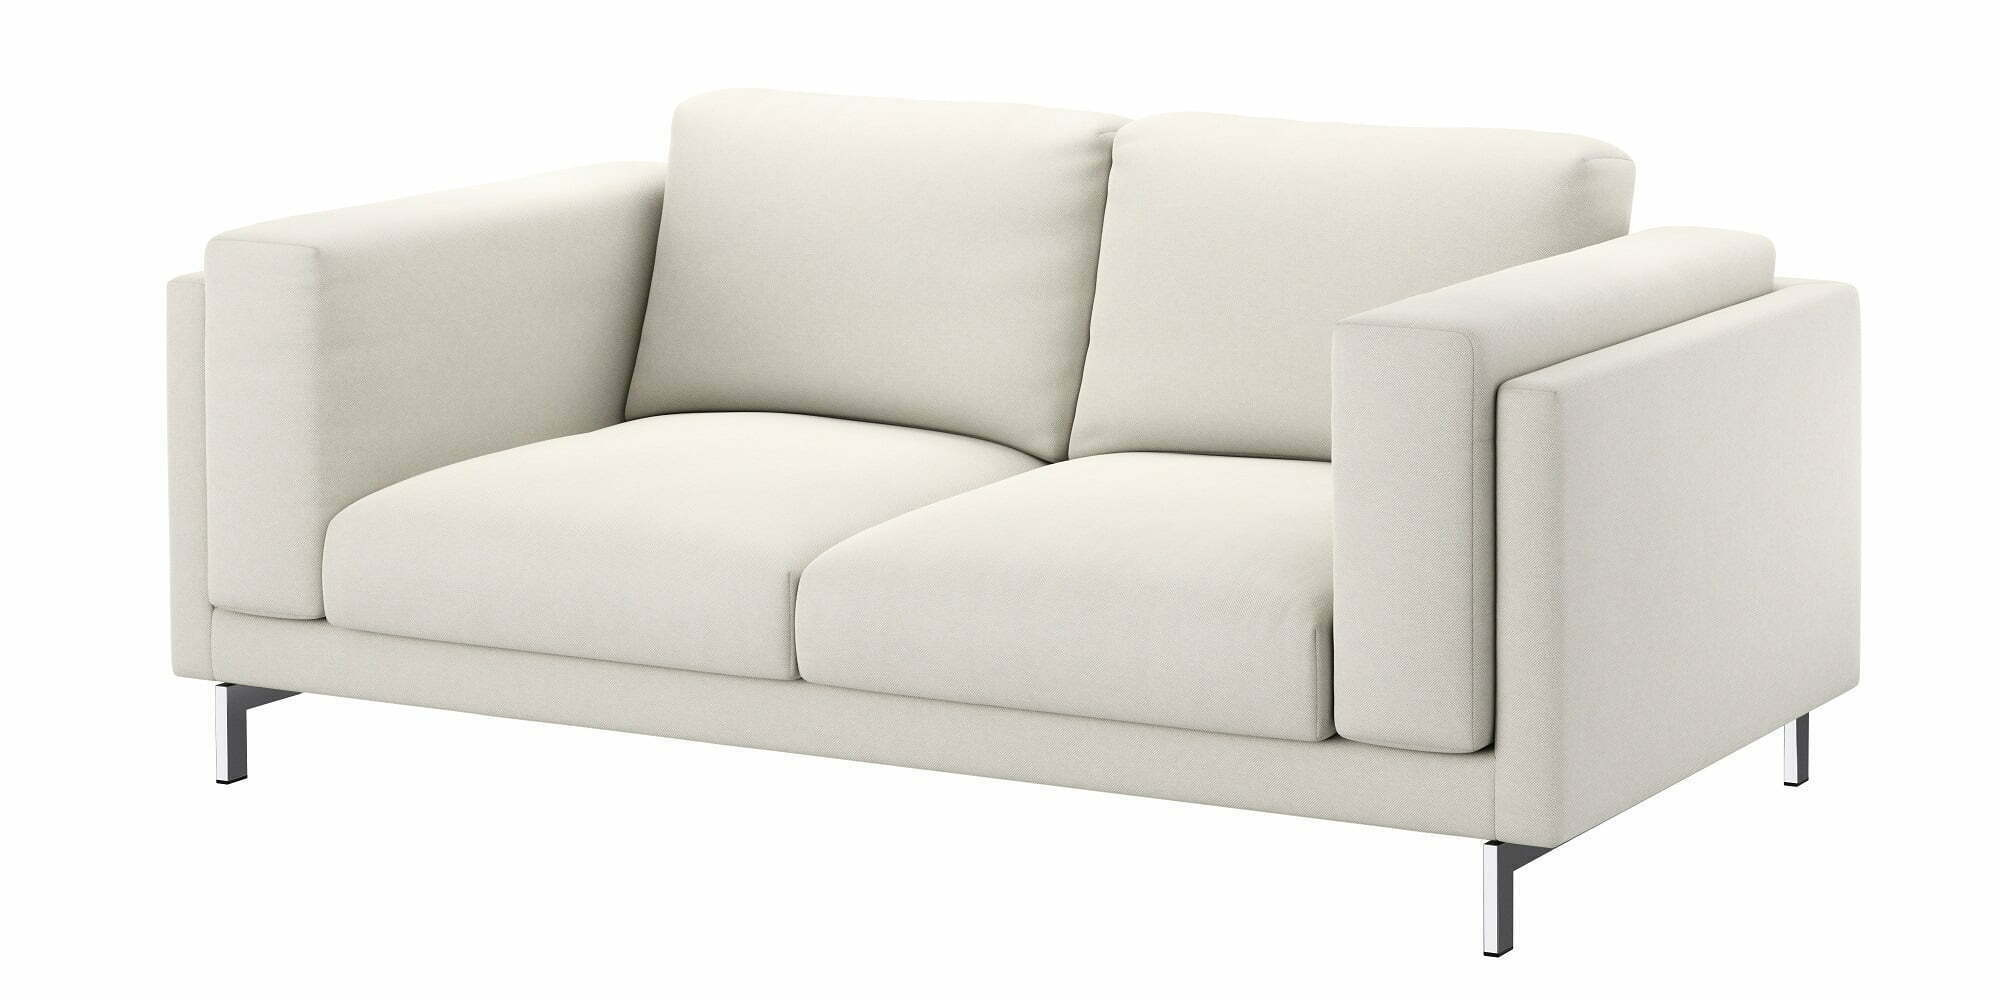 harga sofa ikea malaysia leather sofas sale on ebay prices at just got lower